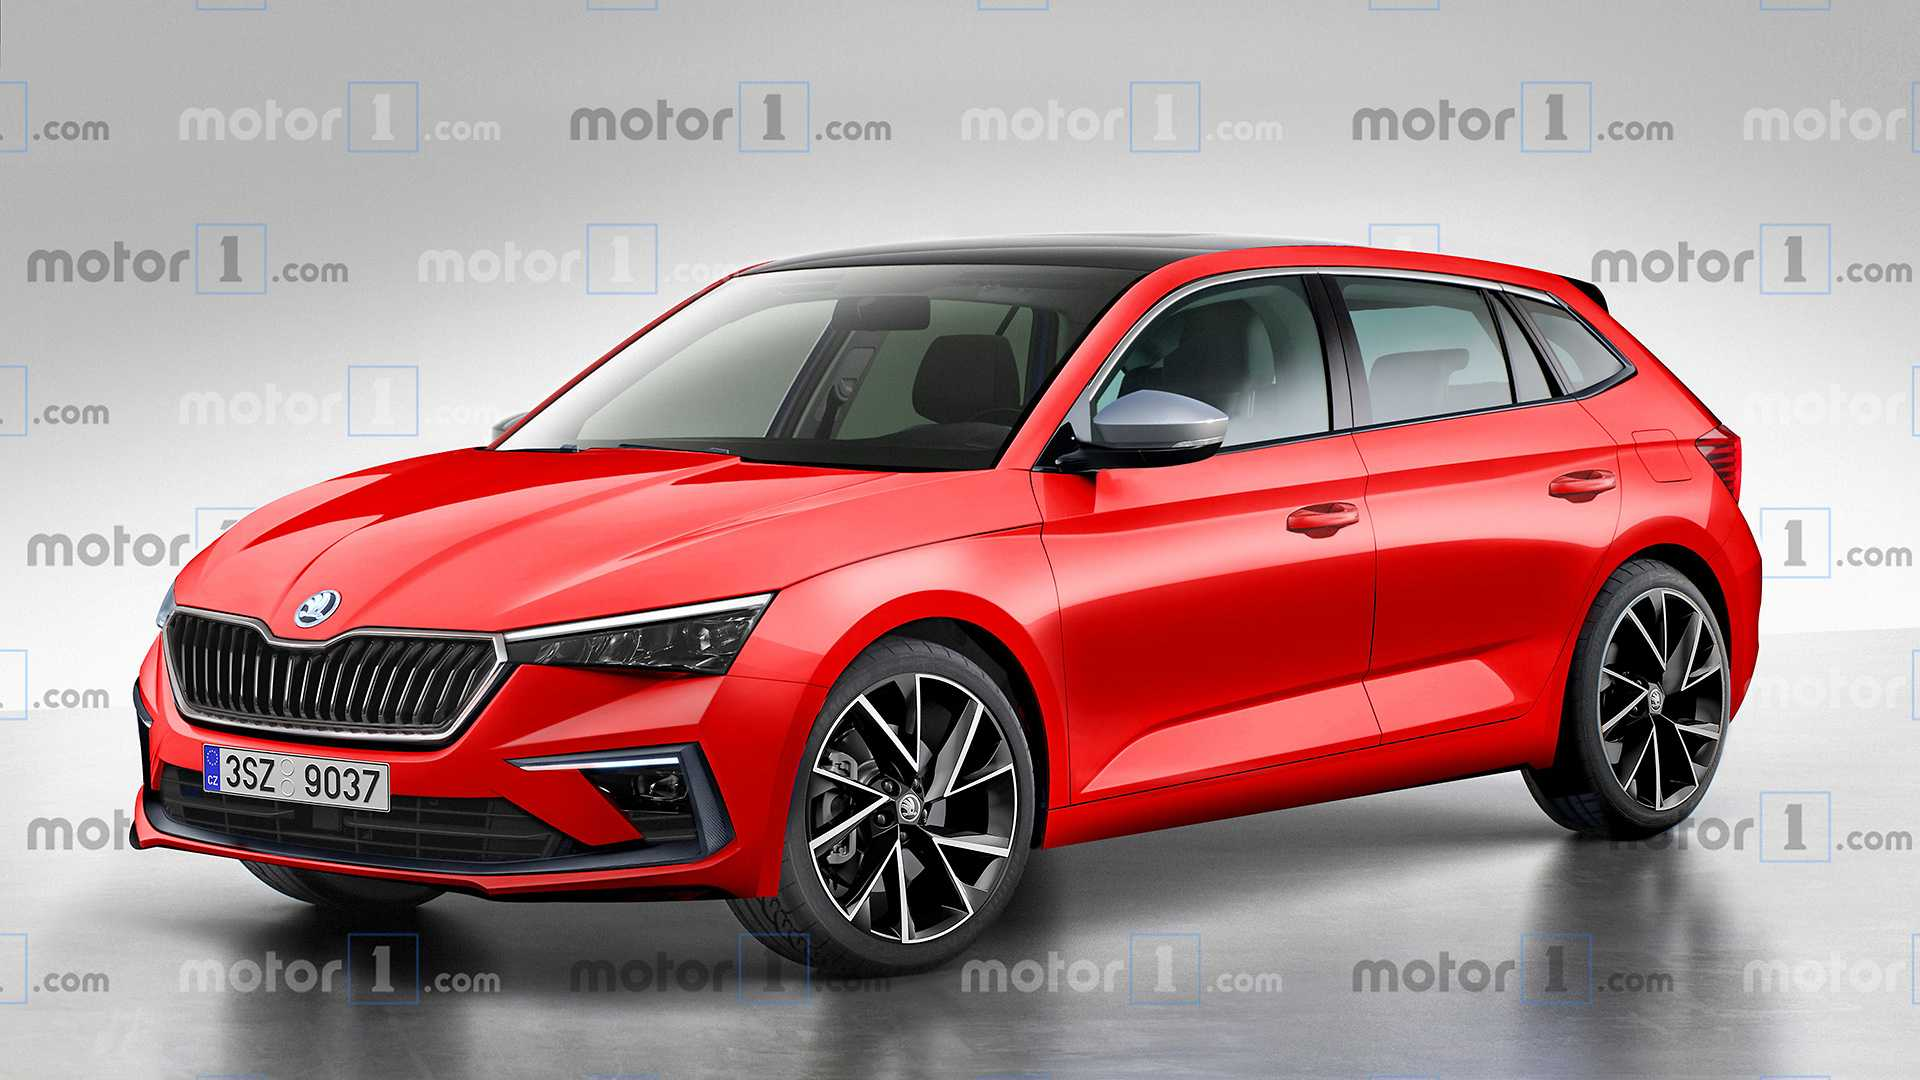 Sibling Rivalry Skoda Scala Rendered To Take On The VW Golf 1920x1080